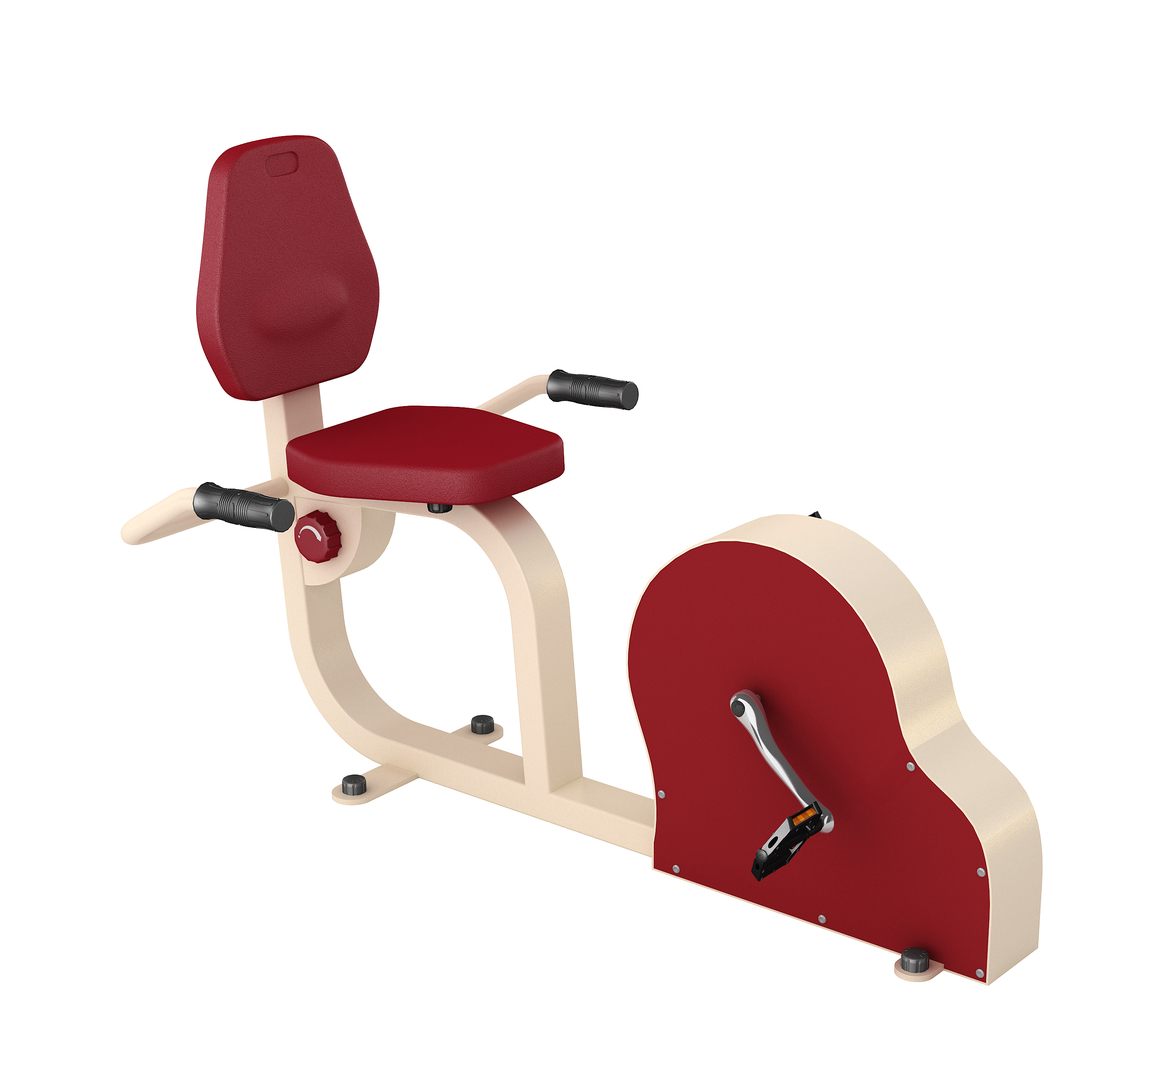 Gym Equipment Vadodara: Atlas Workout Machine